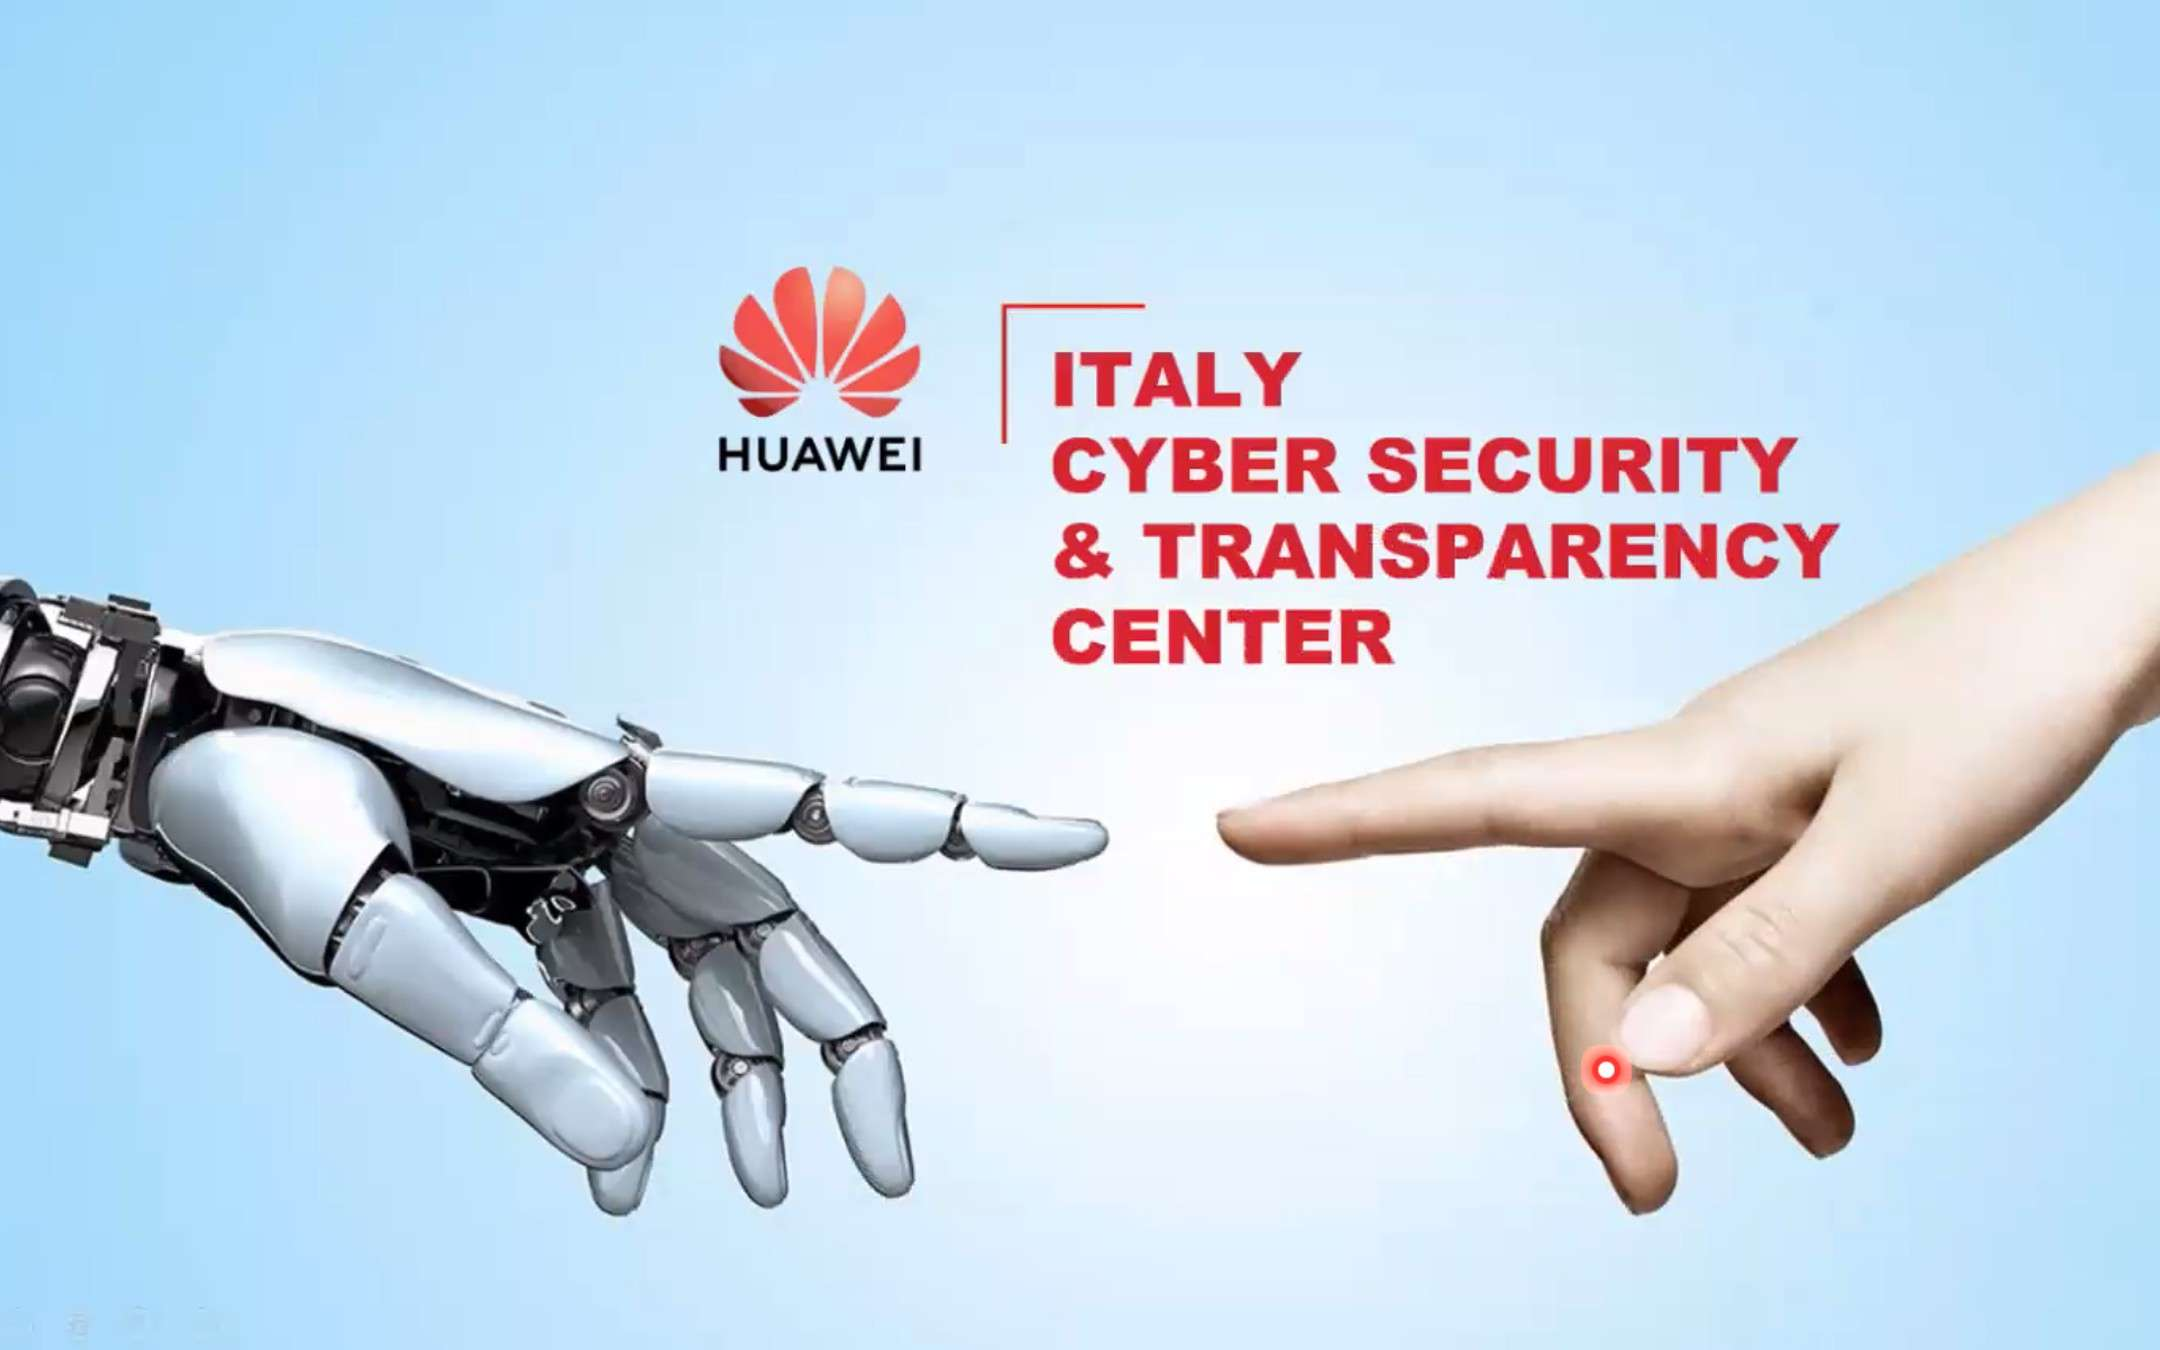 Huawei opens a Cybersecurity & Transparency Center in Rome